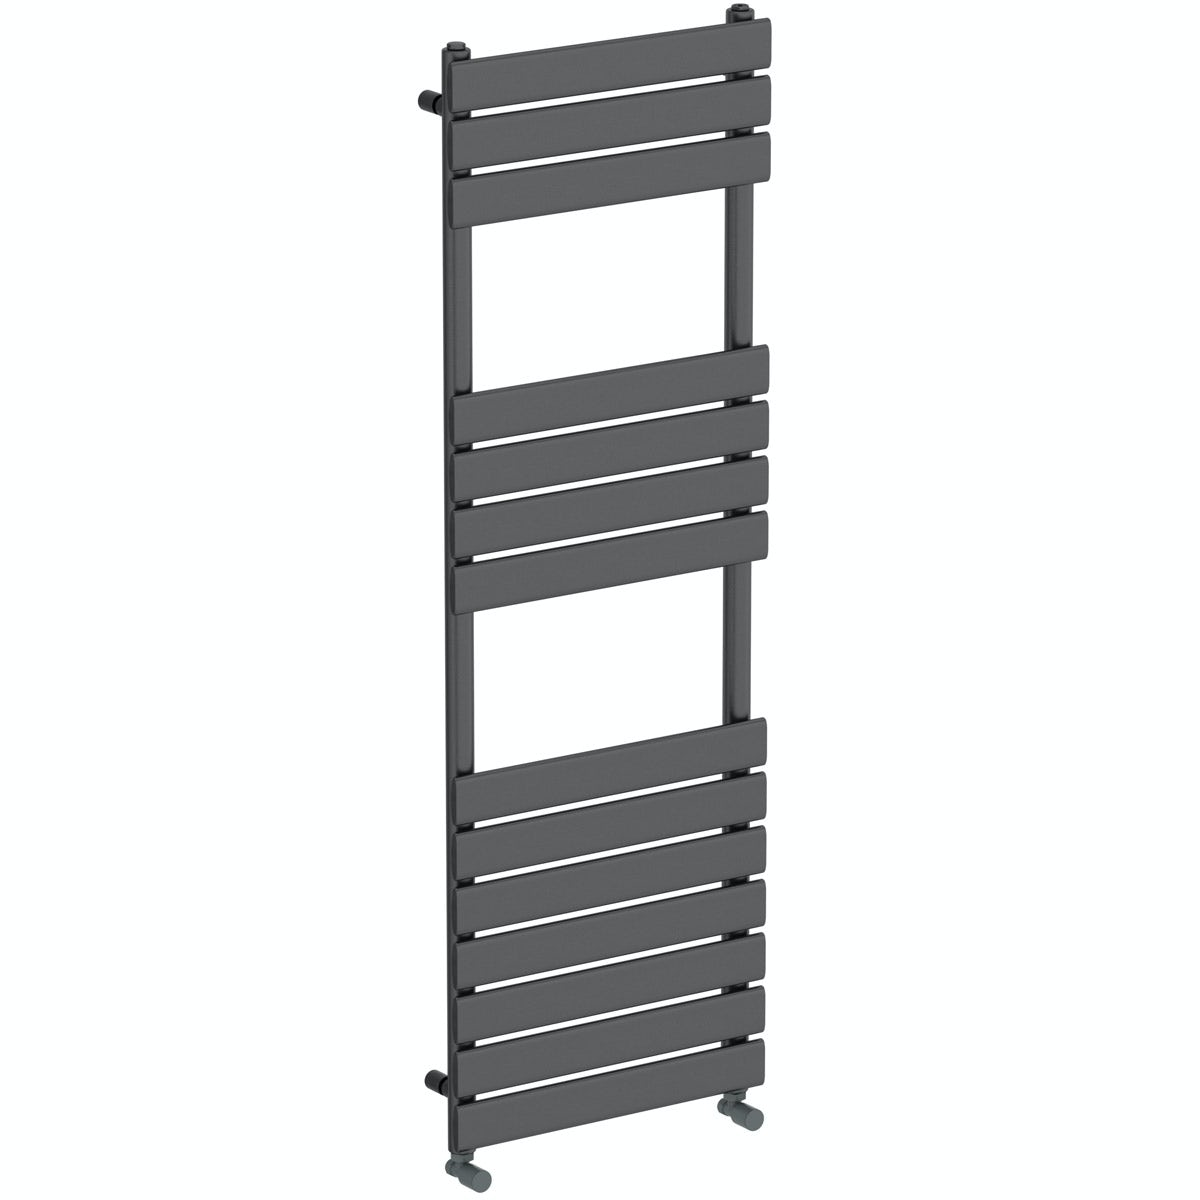 Orchard Wharfe anthracite grey heated towel rail 1500 x 500